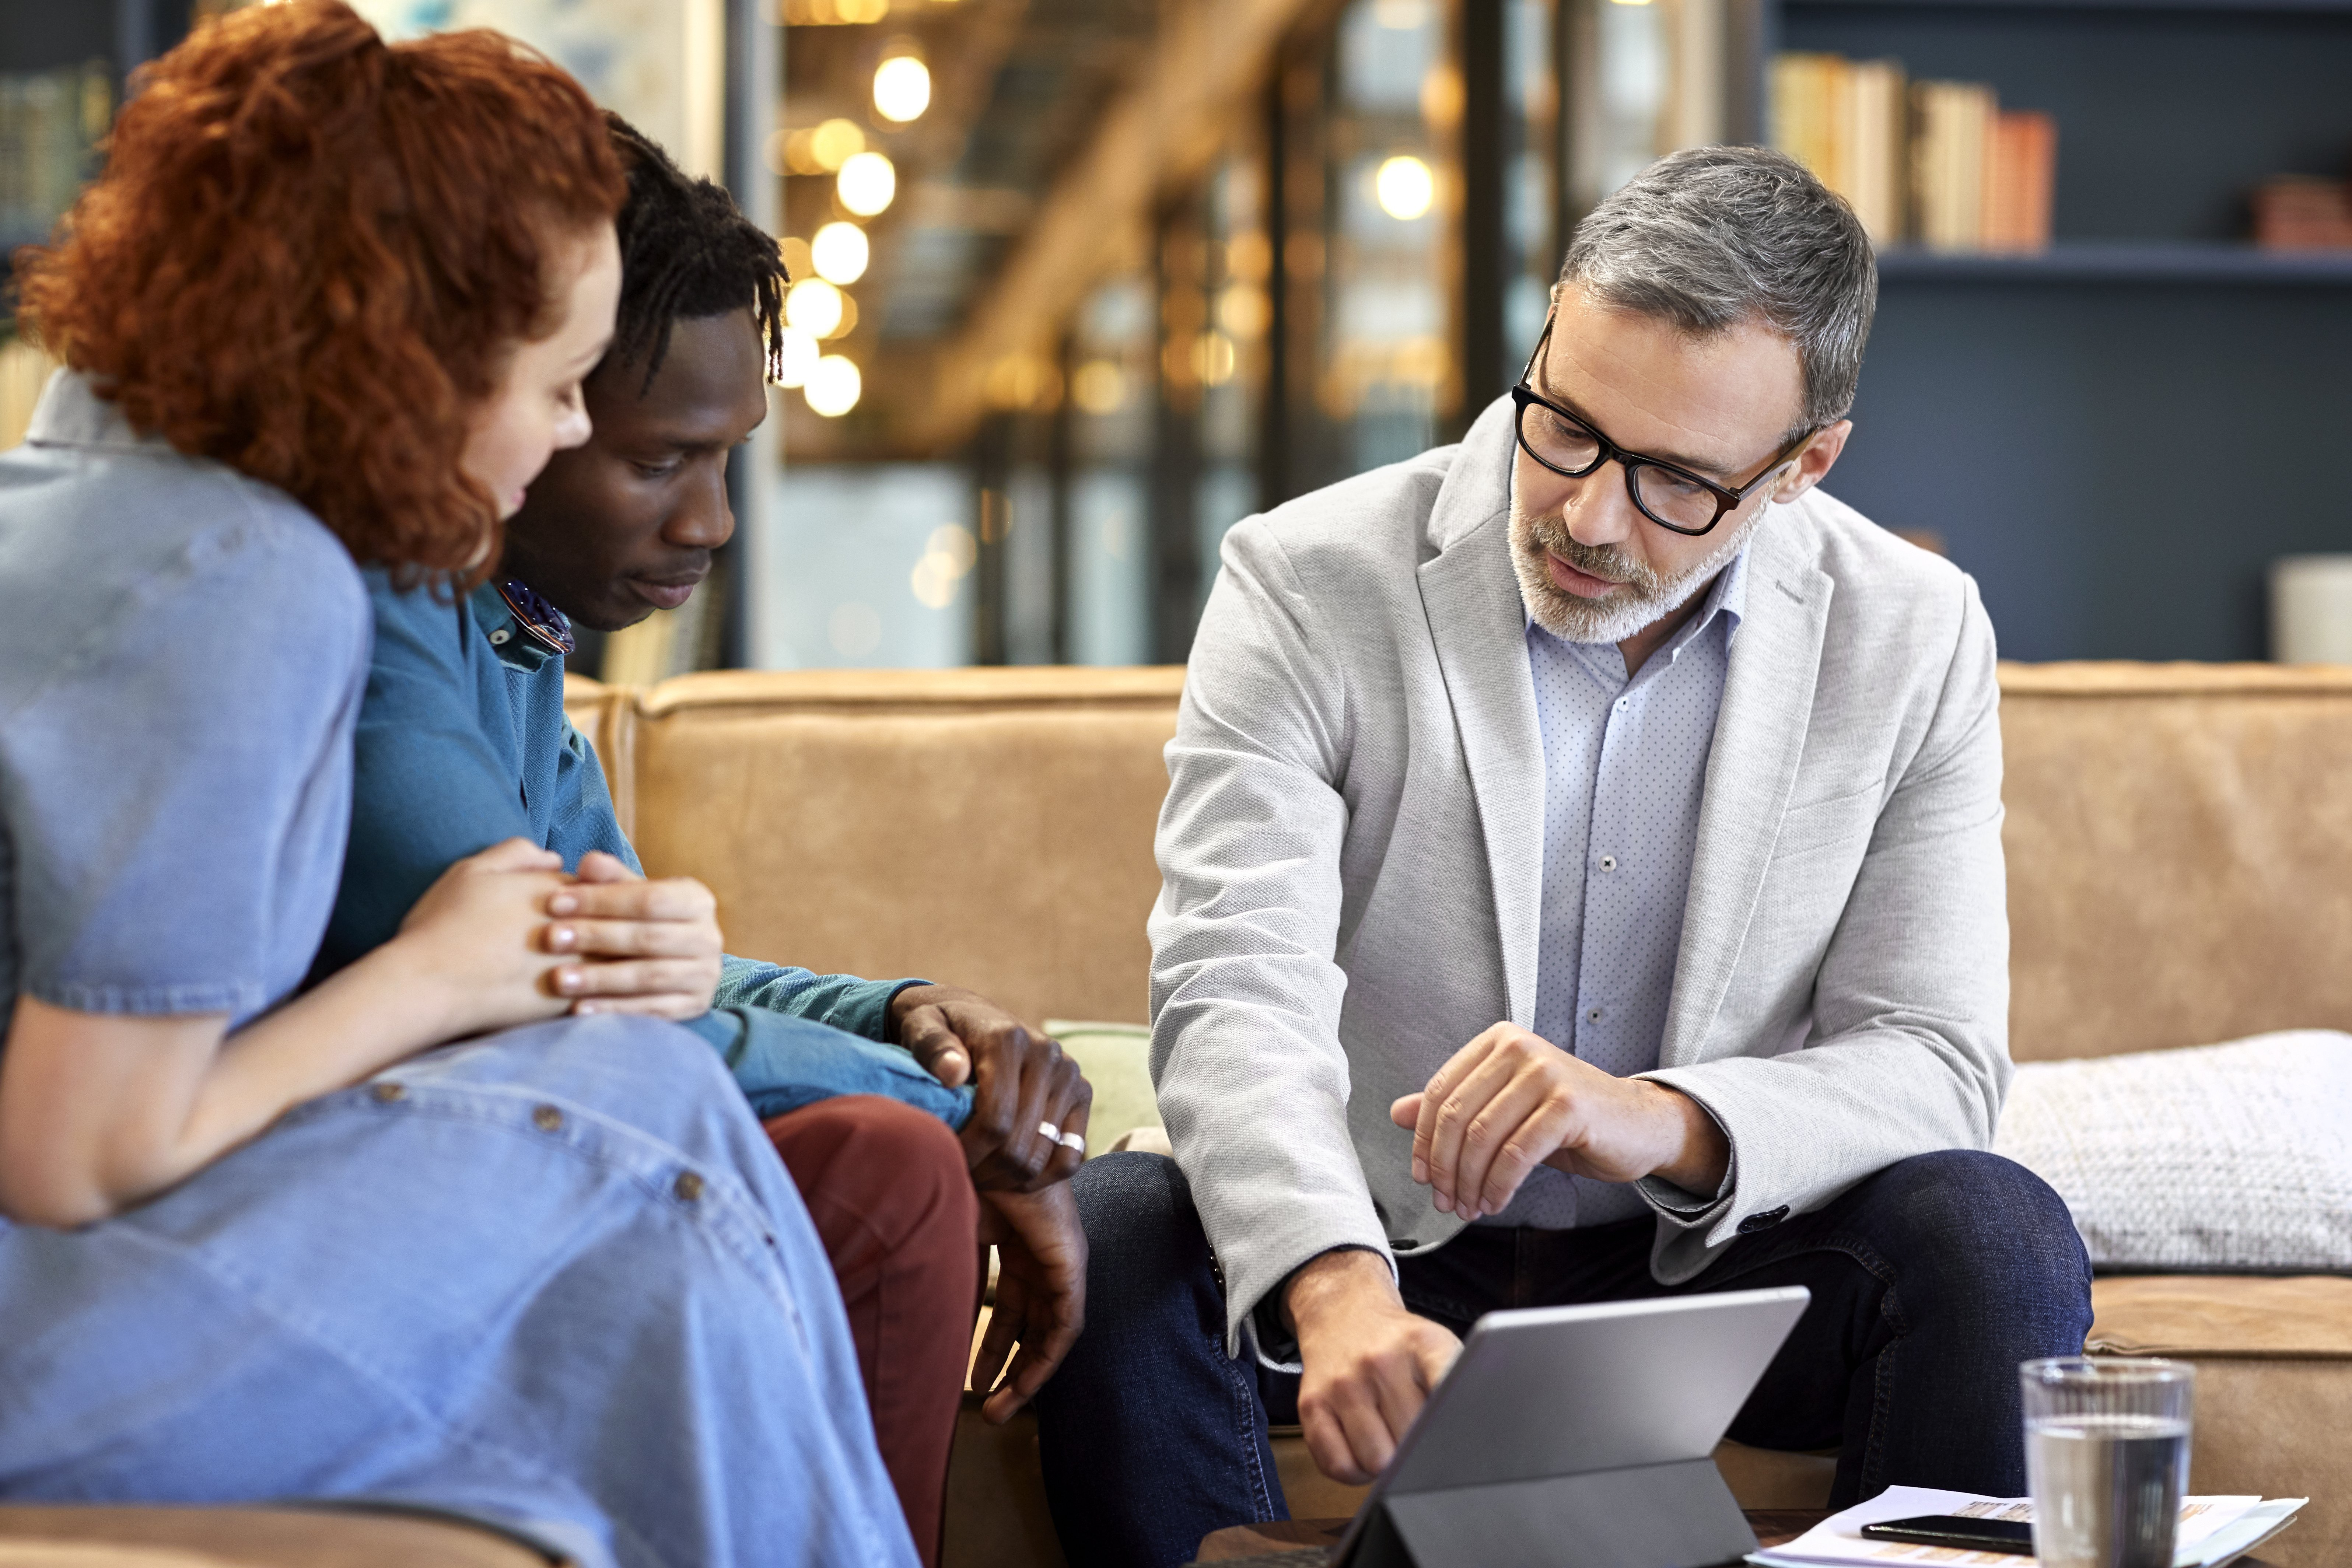 Mature financial advisor planning with young multi-ethnic couple at office. Businessman is discussing over digital tablet with clients at workplace. They are sitting in meeting.|Photo: Getty Images